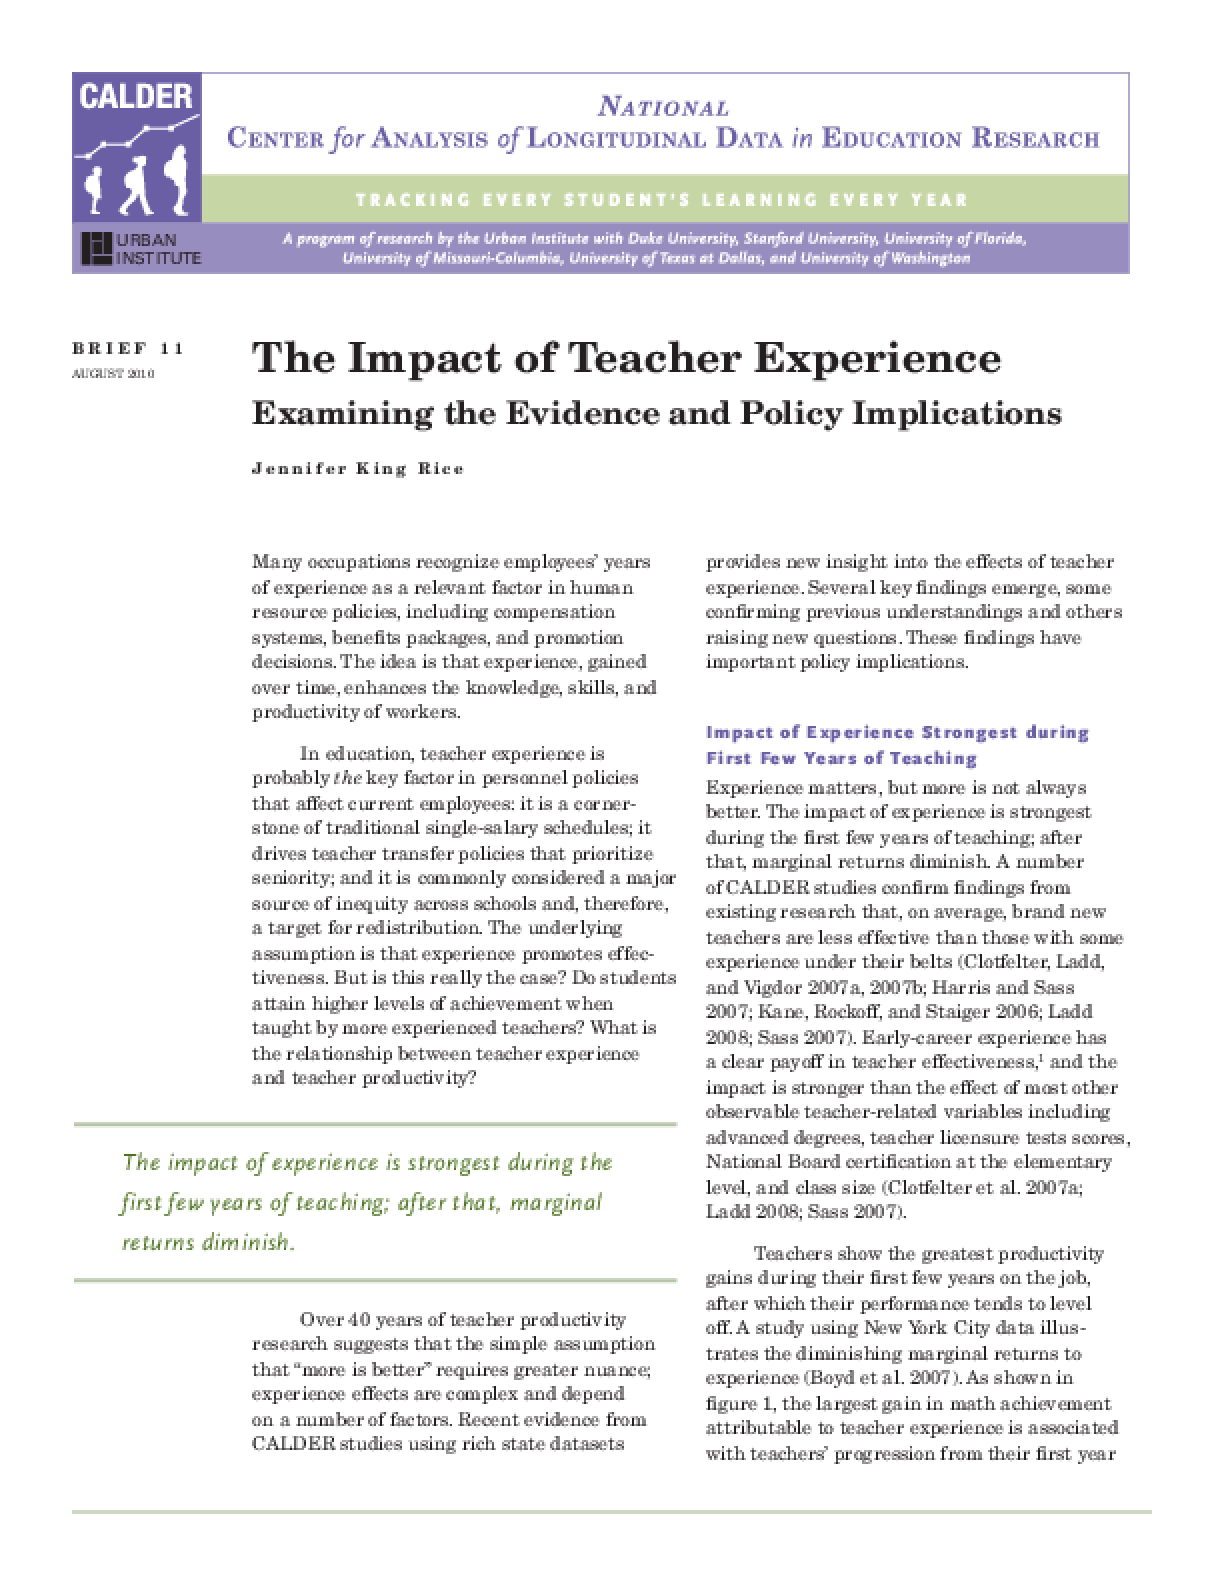 Key Findings From National Longitudinal >> The Impact Of Teacher Experience Examining The Evidence And Policy